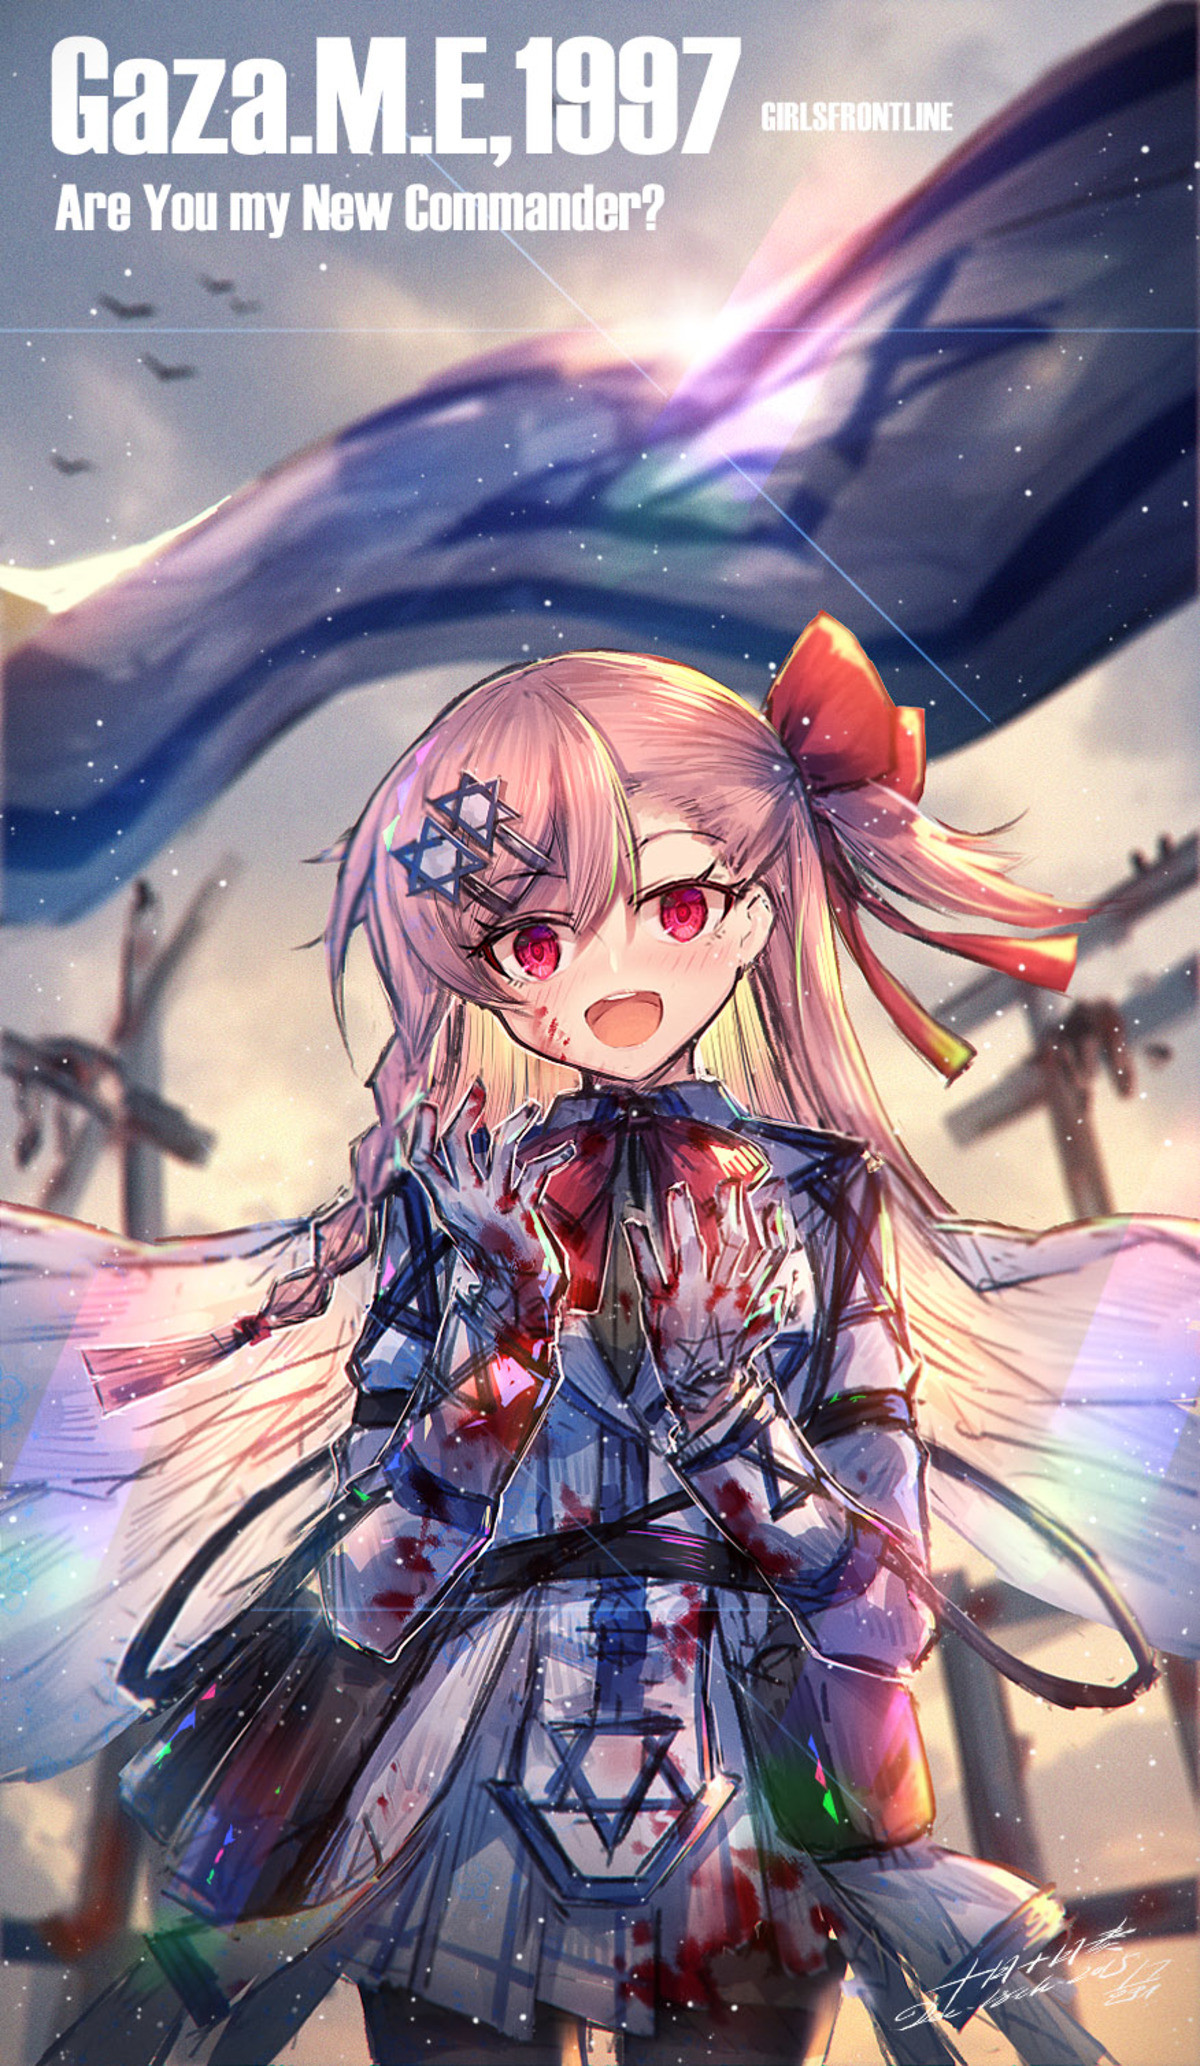 Negev-chan (Girl's Frontline). join list: Animango (881 subs)Mention Clicks: 96107Msgs Sent: 717502Mention History join list:. mousesama maybe?